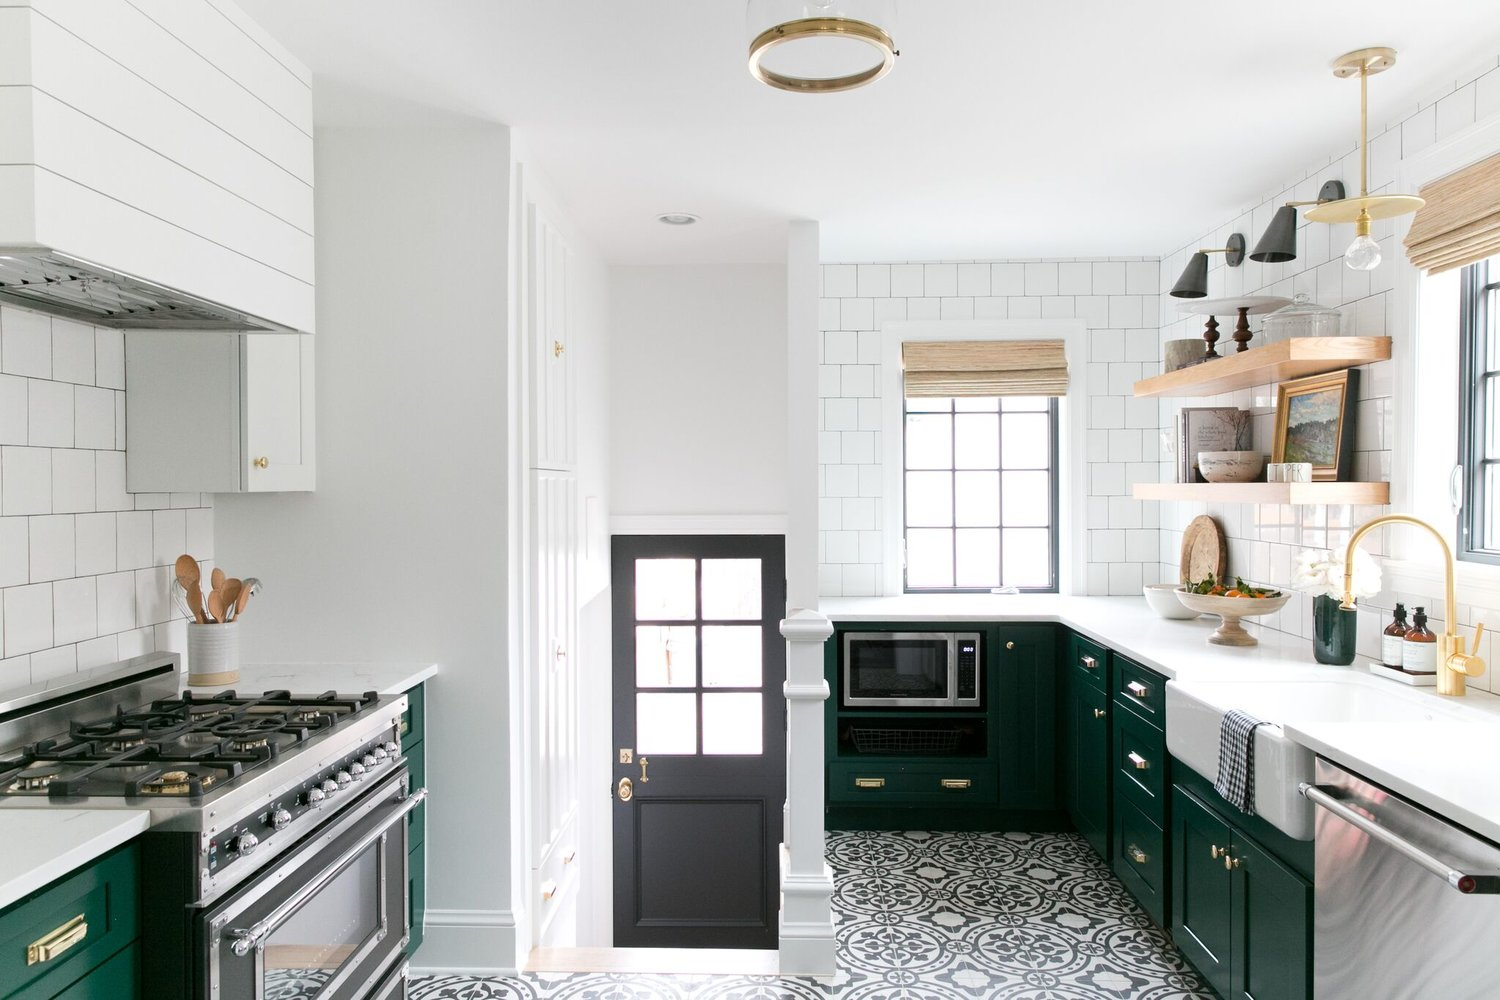 Kitchen entryway with black and white tile floor